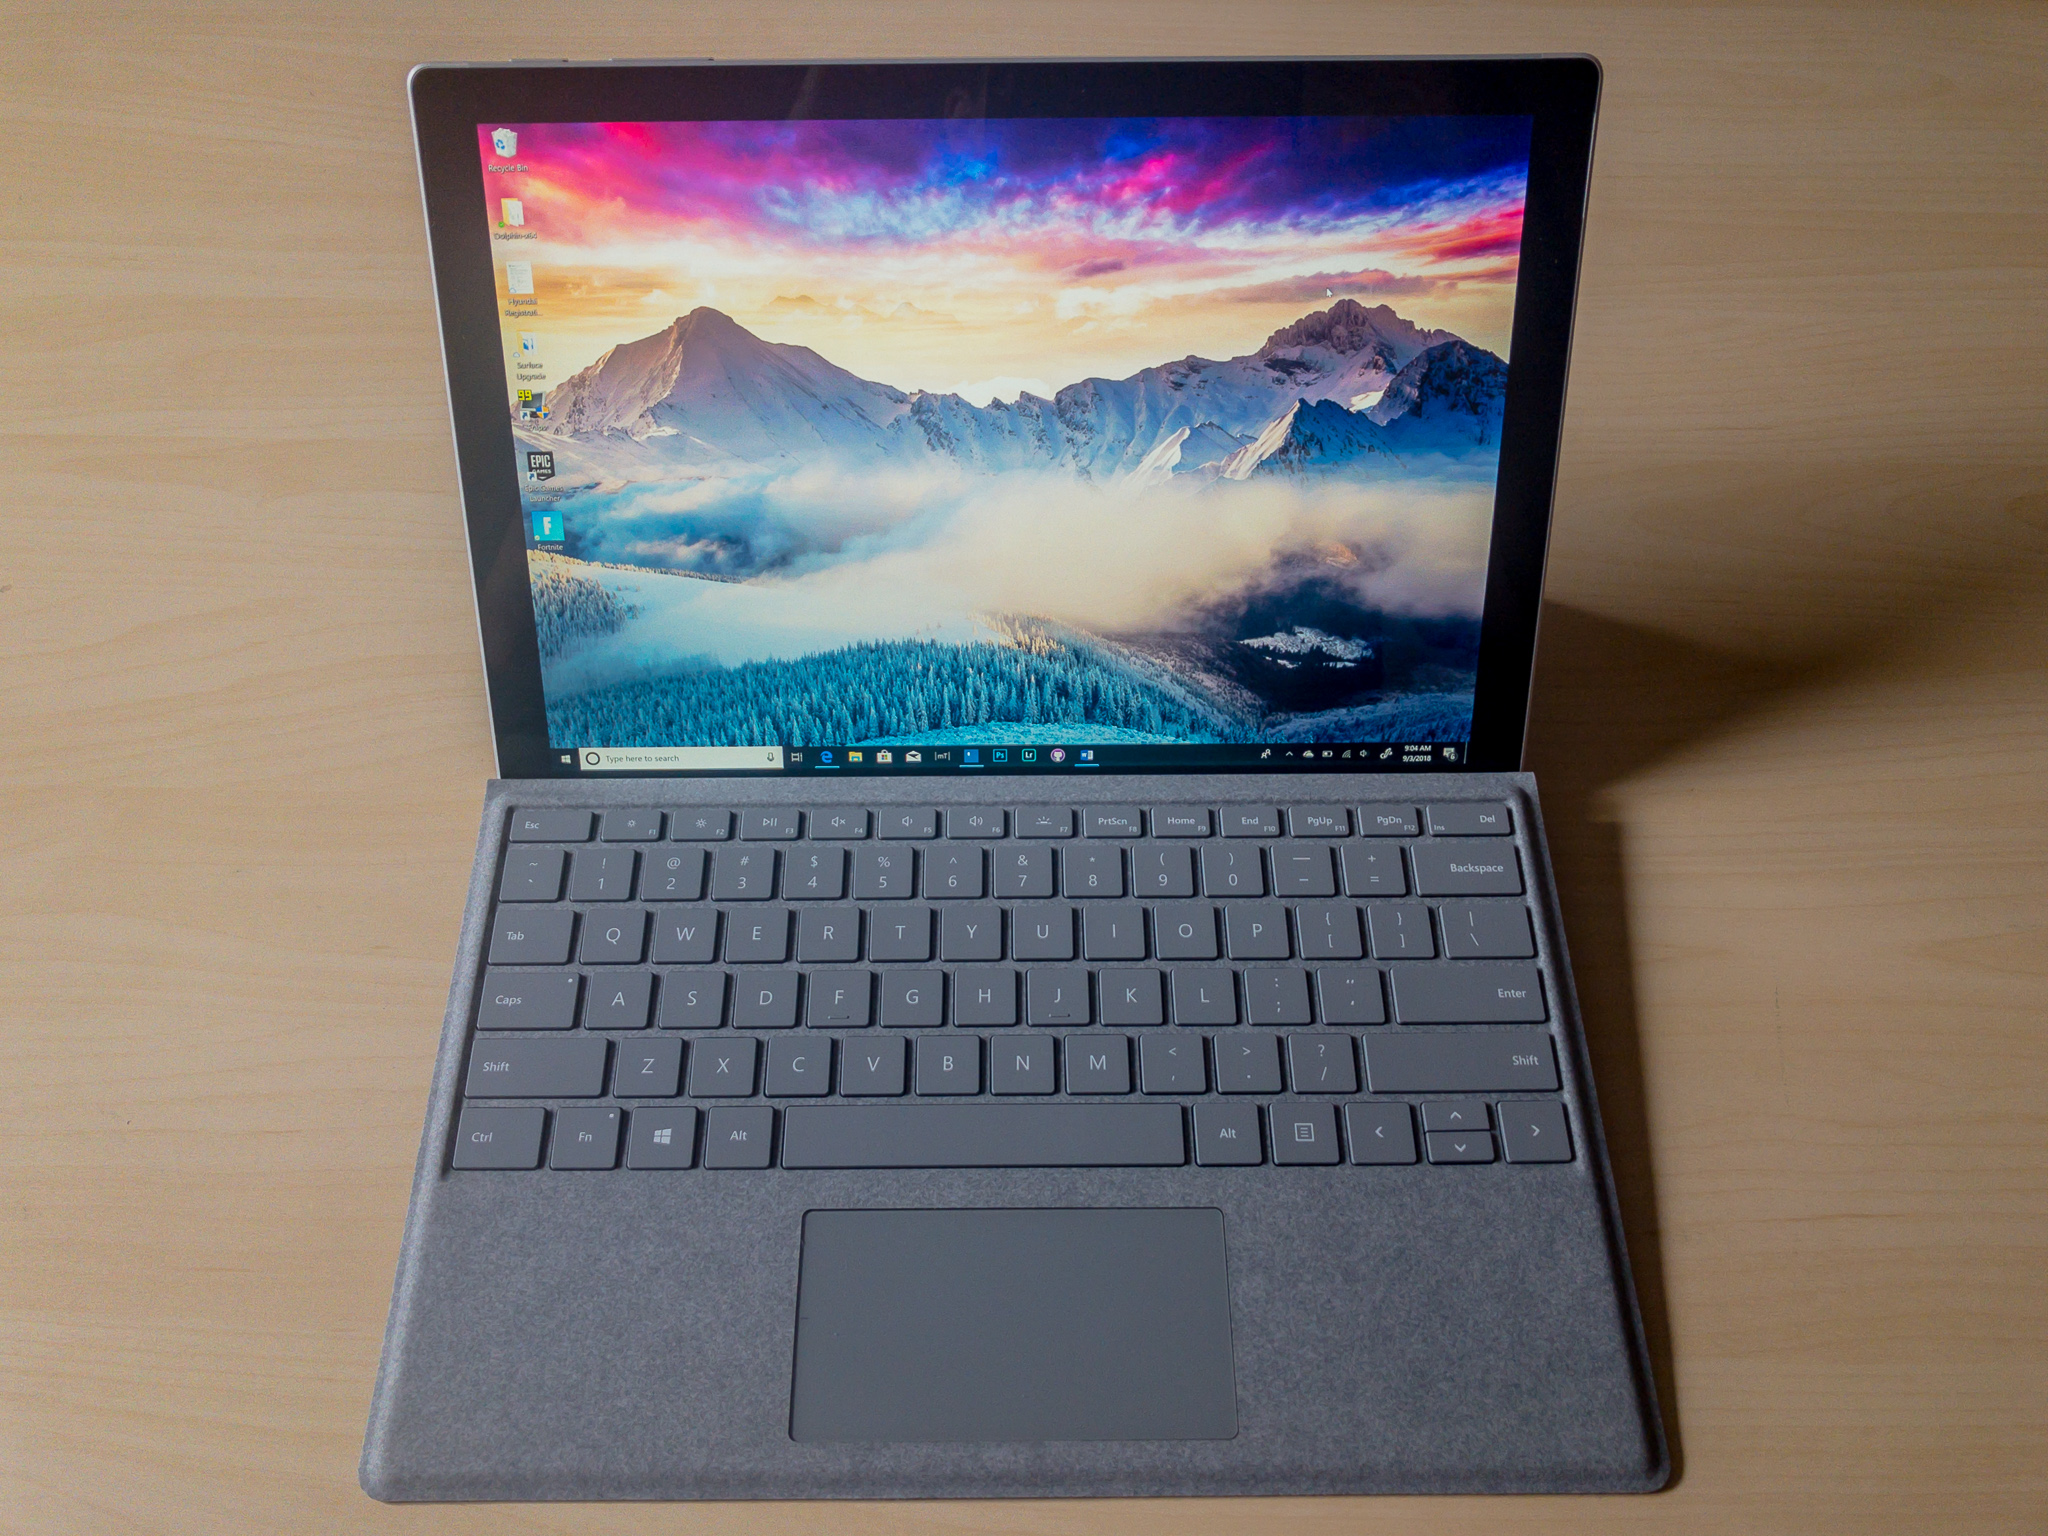 Microsoft Surface Pro Review: This One Actually Goes – BirchTree